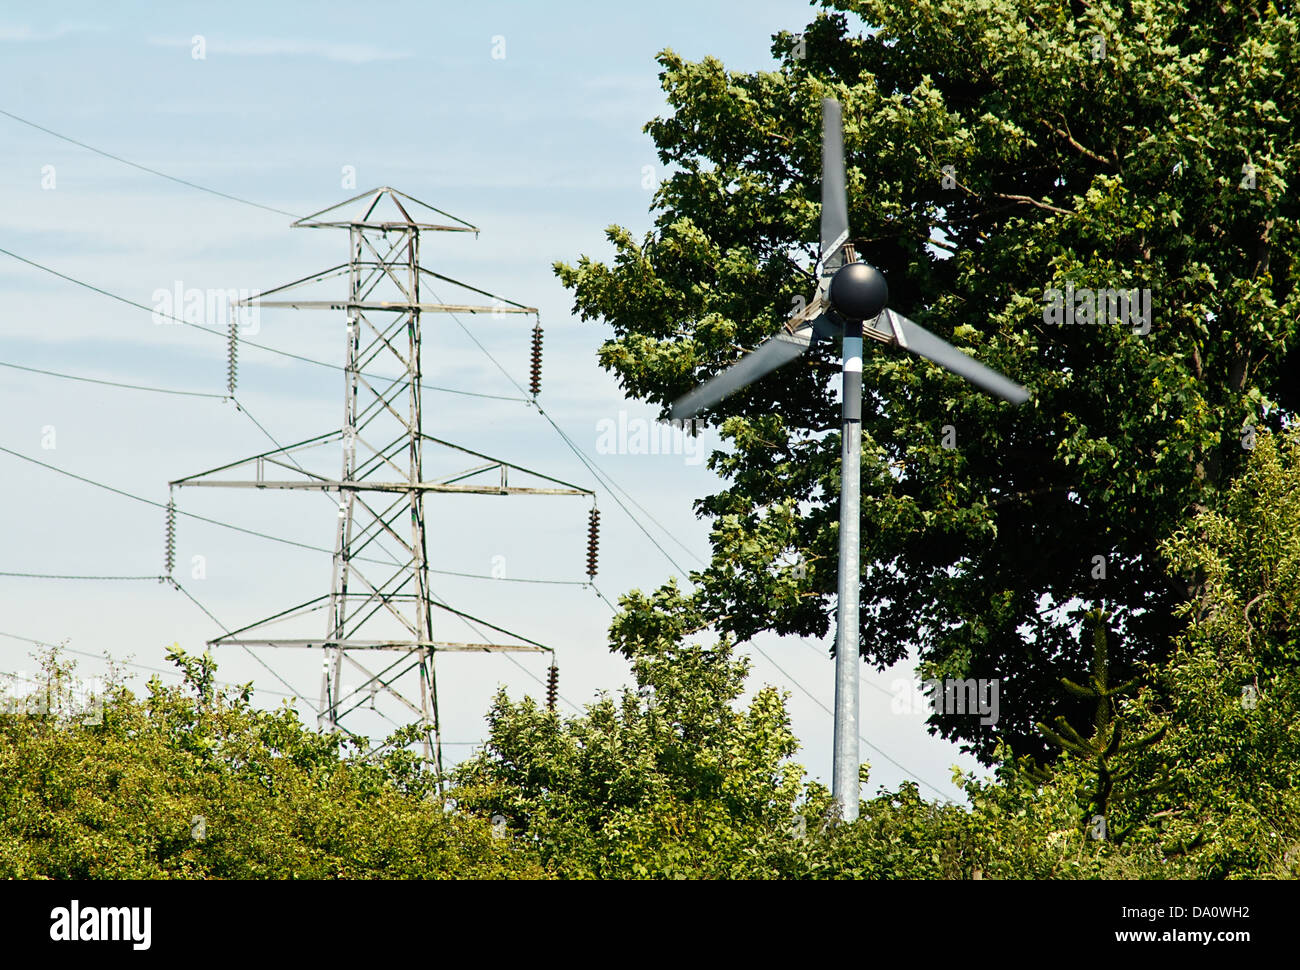 Domestic small scale wind turbine to generate electricity for a small farm or business - Stock Image